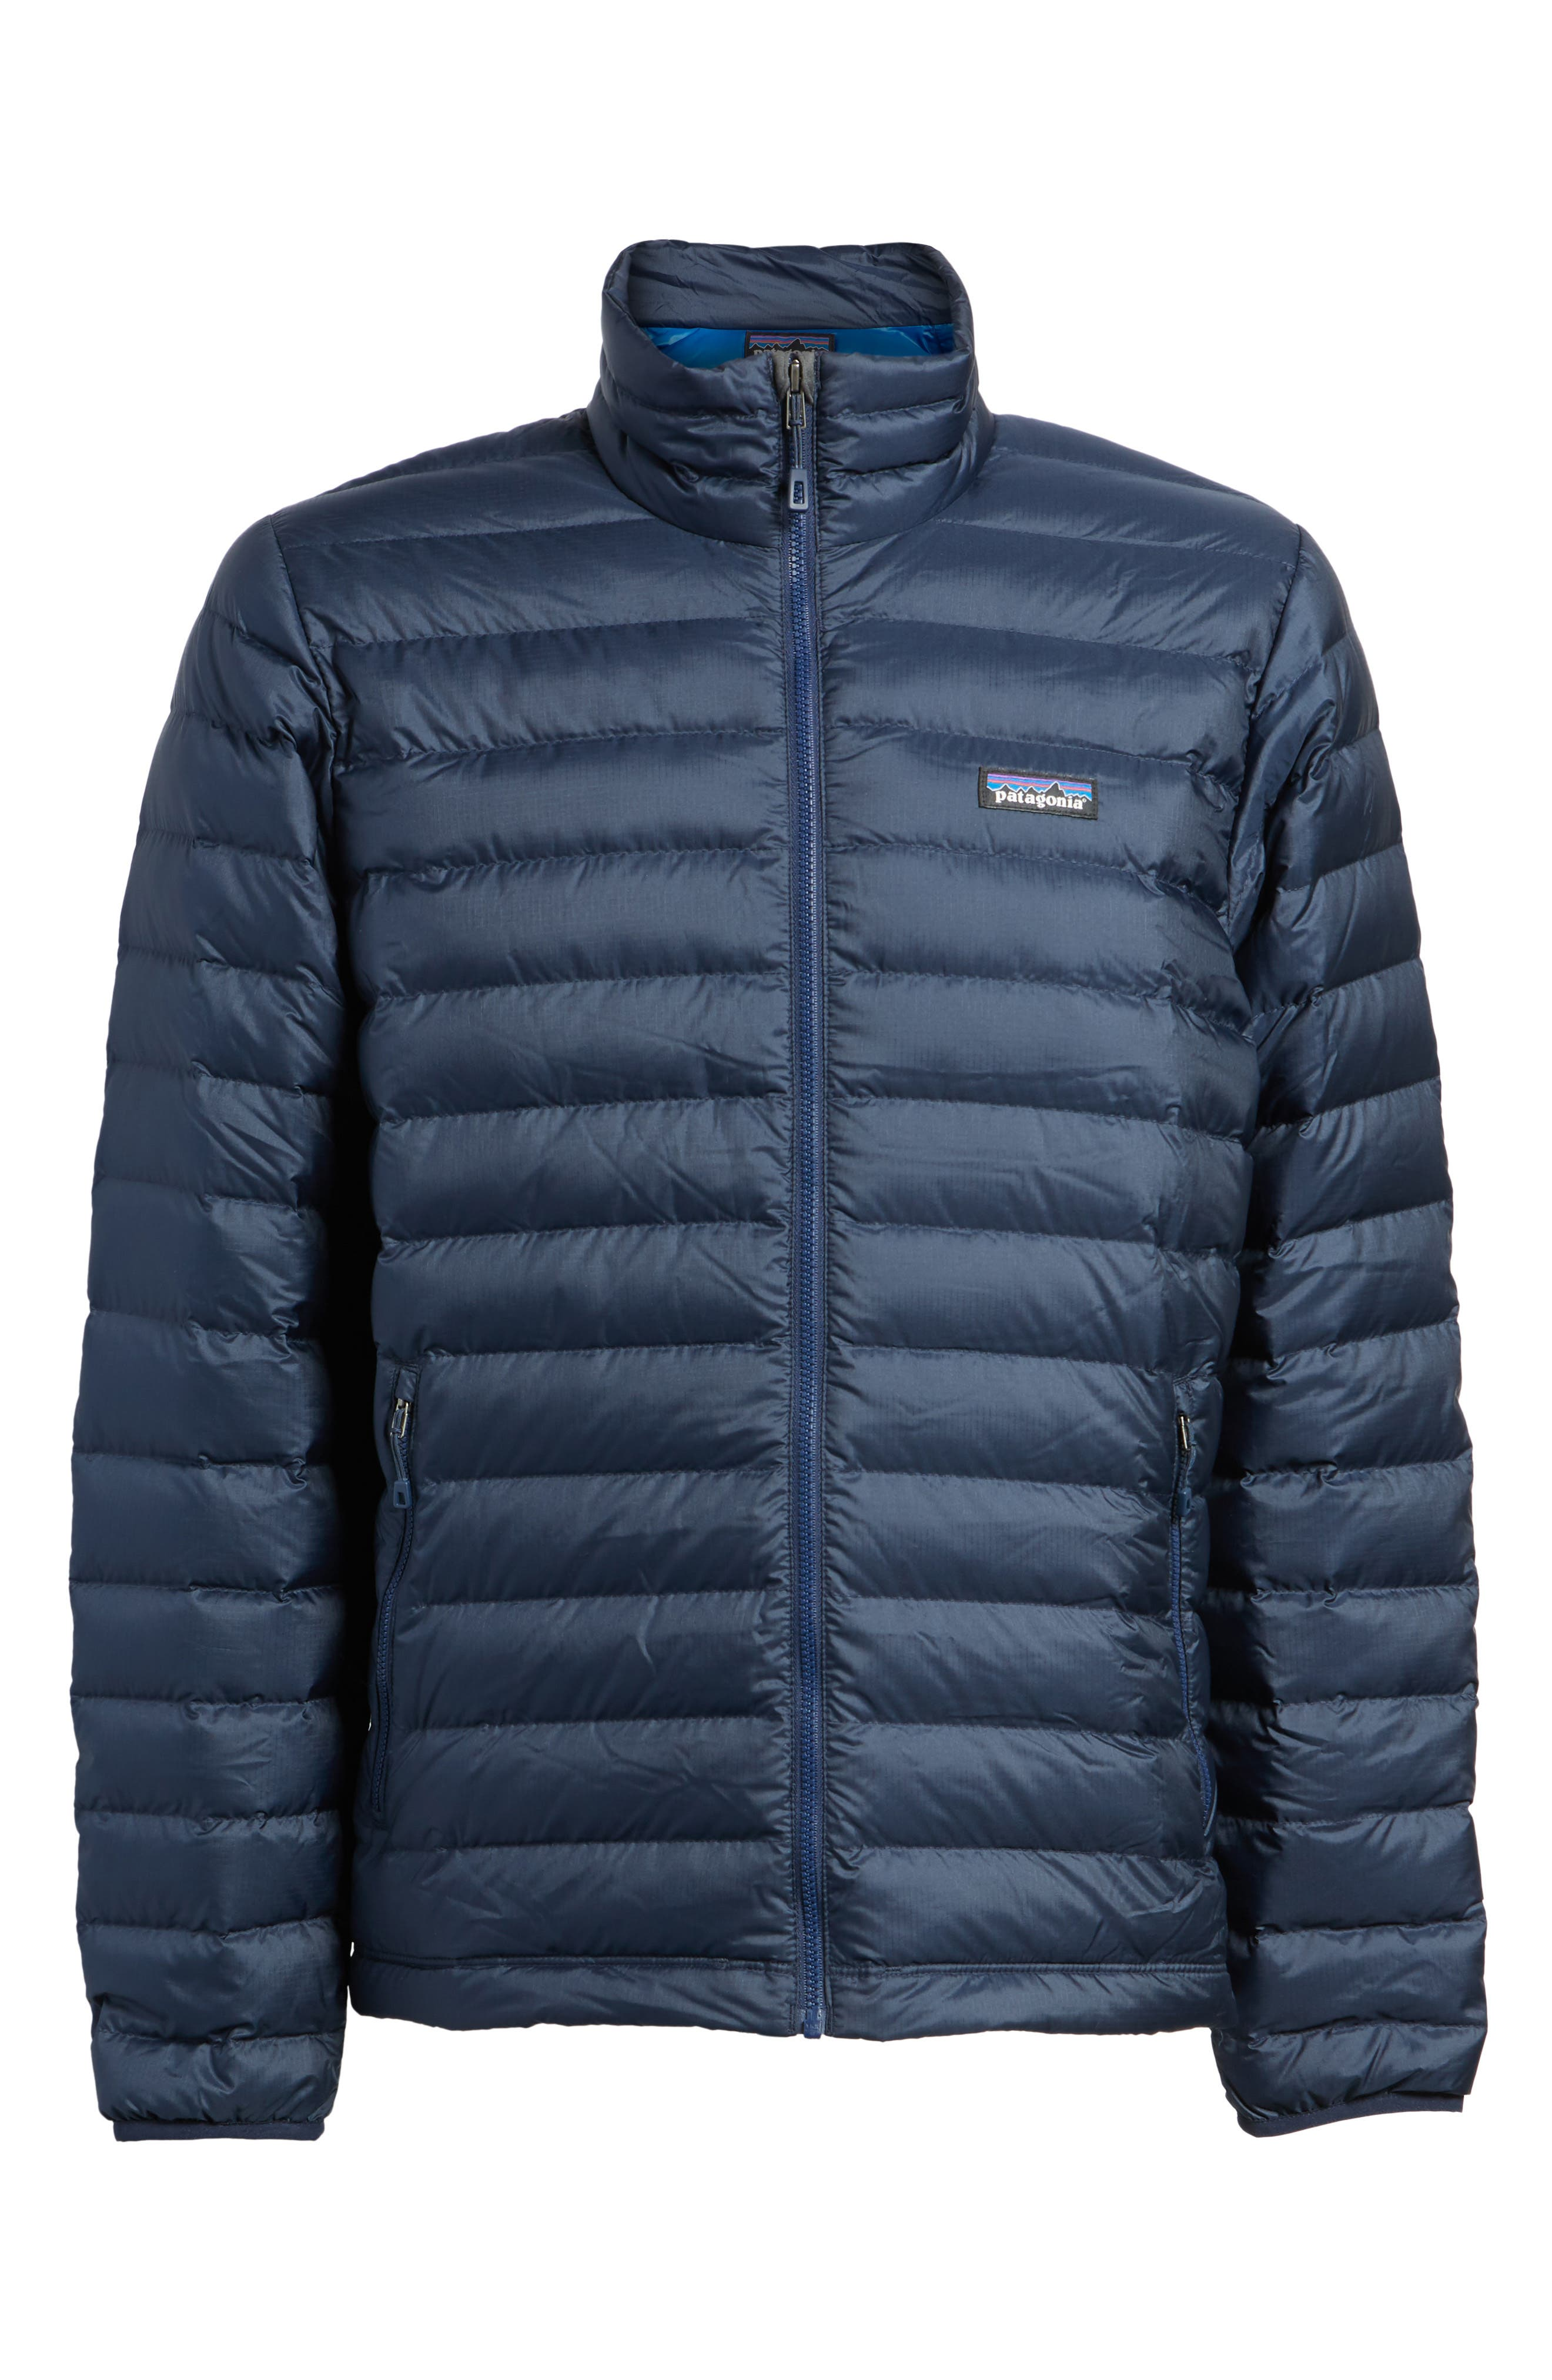 Water Repellent Down Jacket,                             Alternate thumbnail 6, color,                             Navy Blue W/ Navy Blue